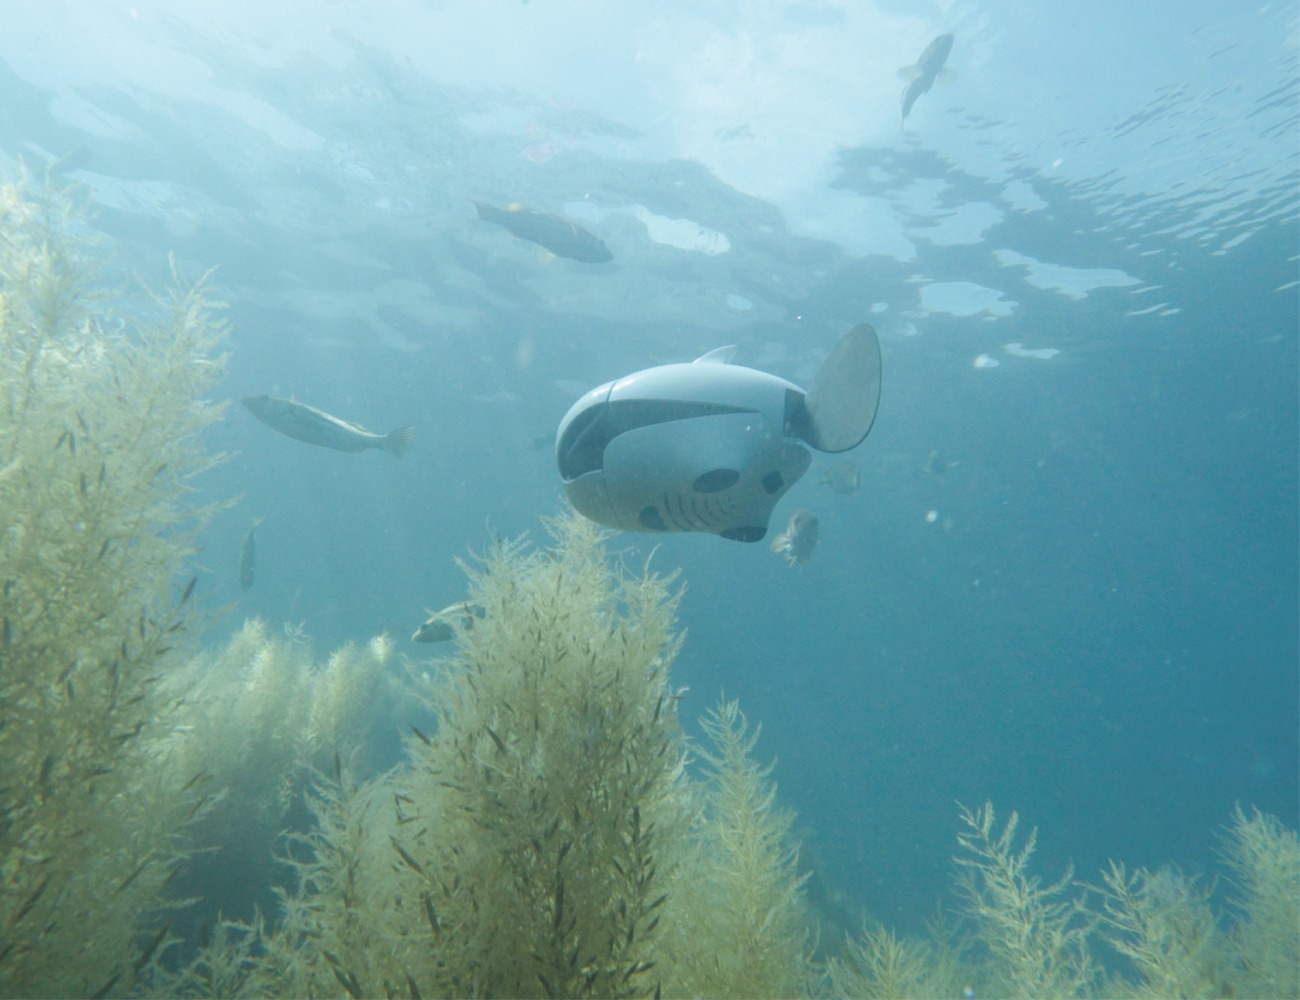 BIKI Underwater Wireless Fish Drone